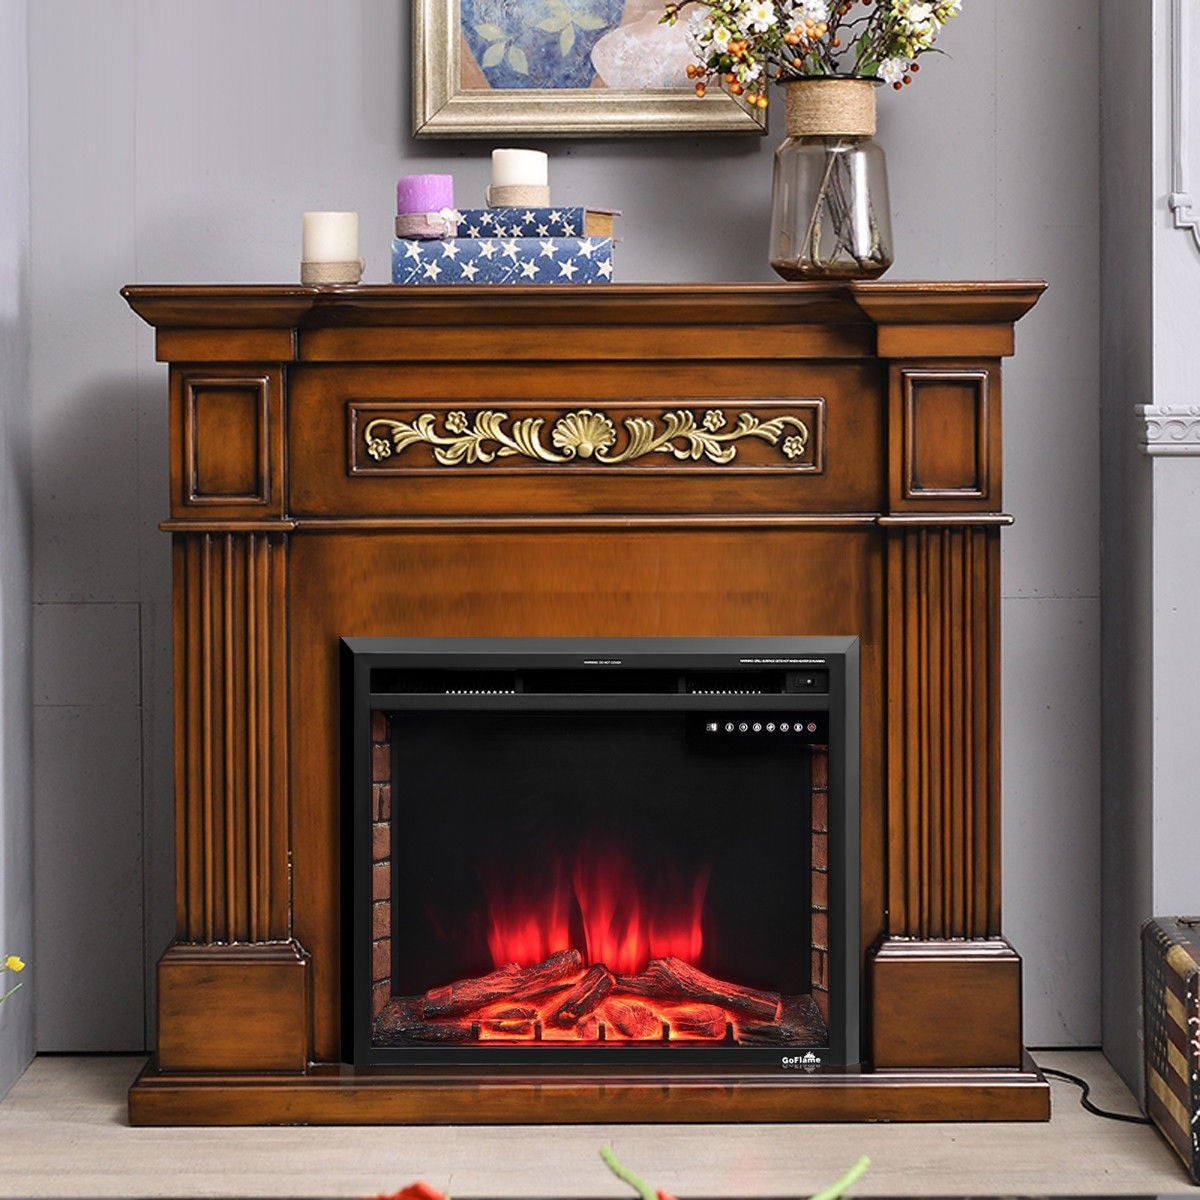 Premium Electric Fireplace Embedded Heater Wall Mounted 1500W Fireplace - Morealis